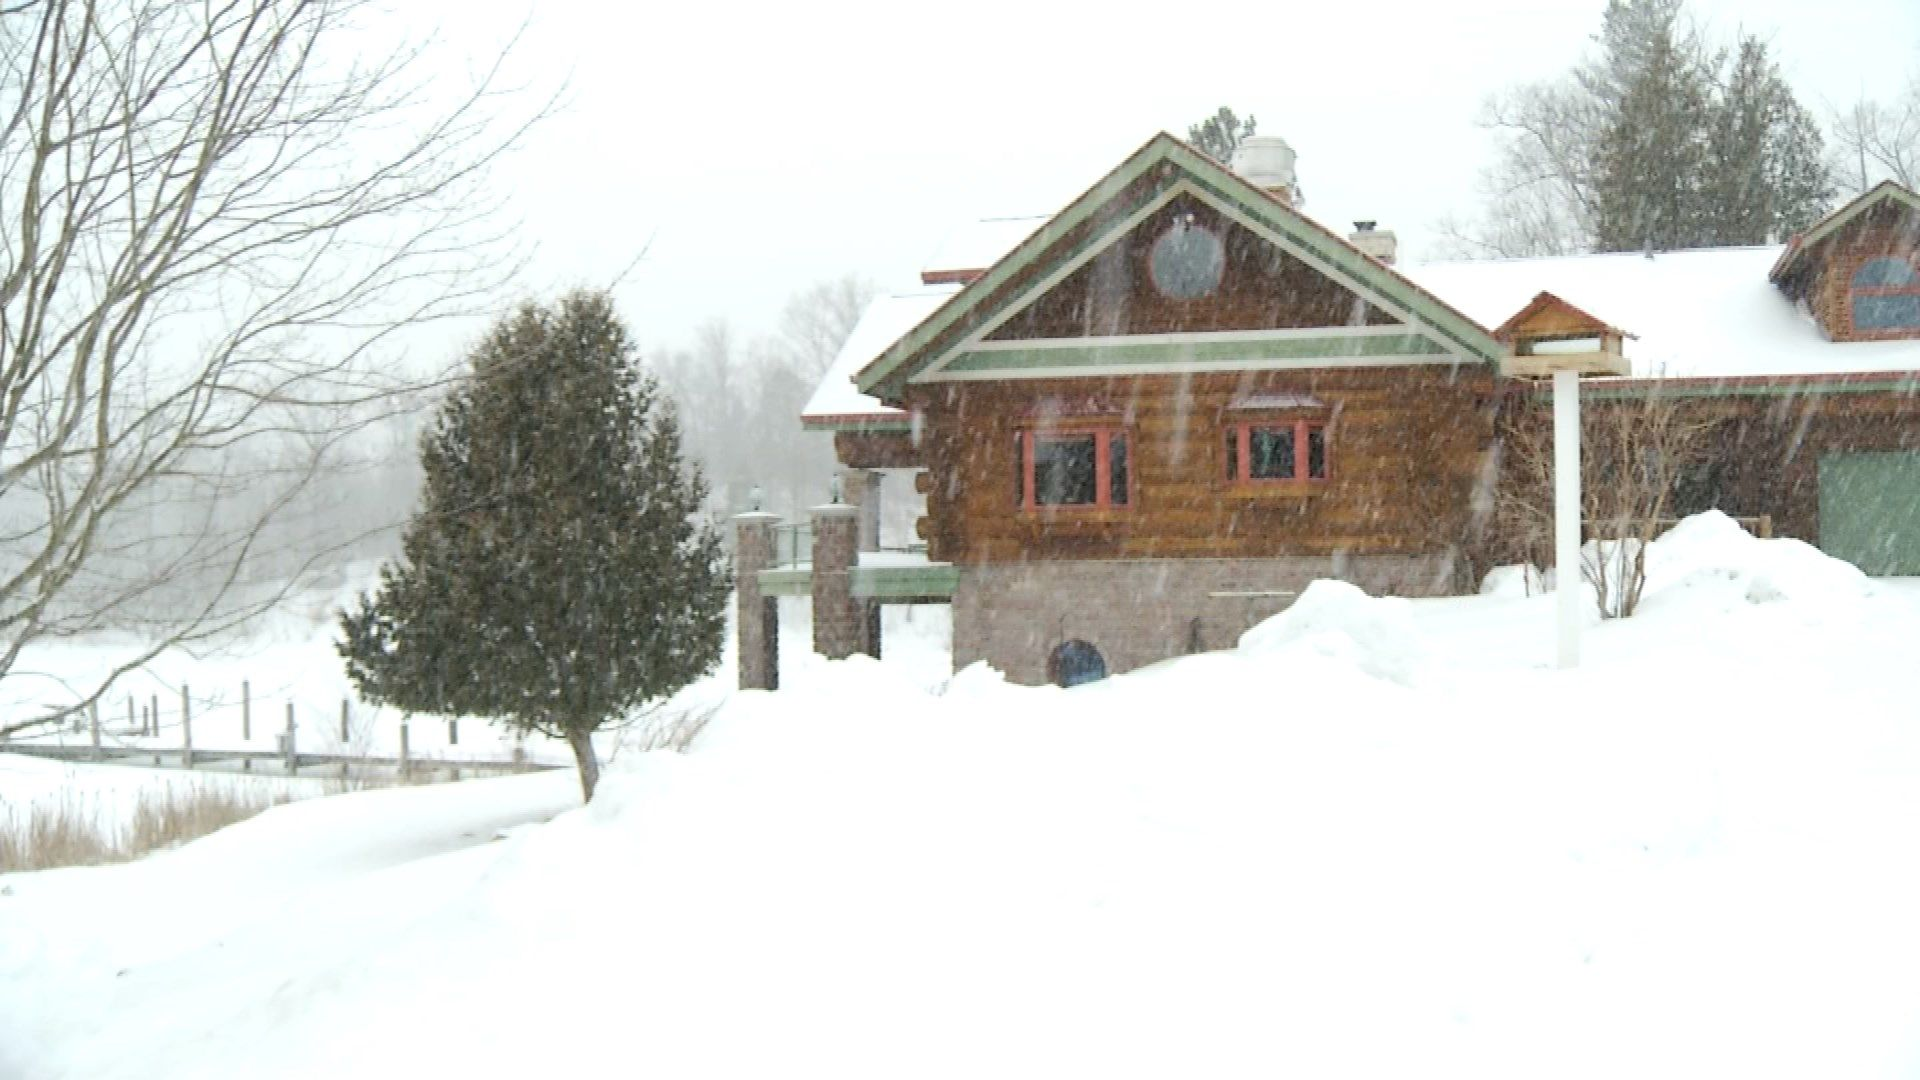 Amazing Northern Michigan Homes: Lewiston Log Home - Northern ...